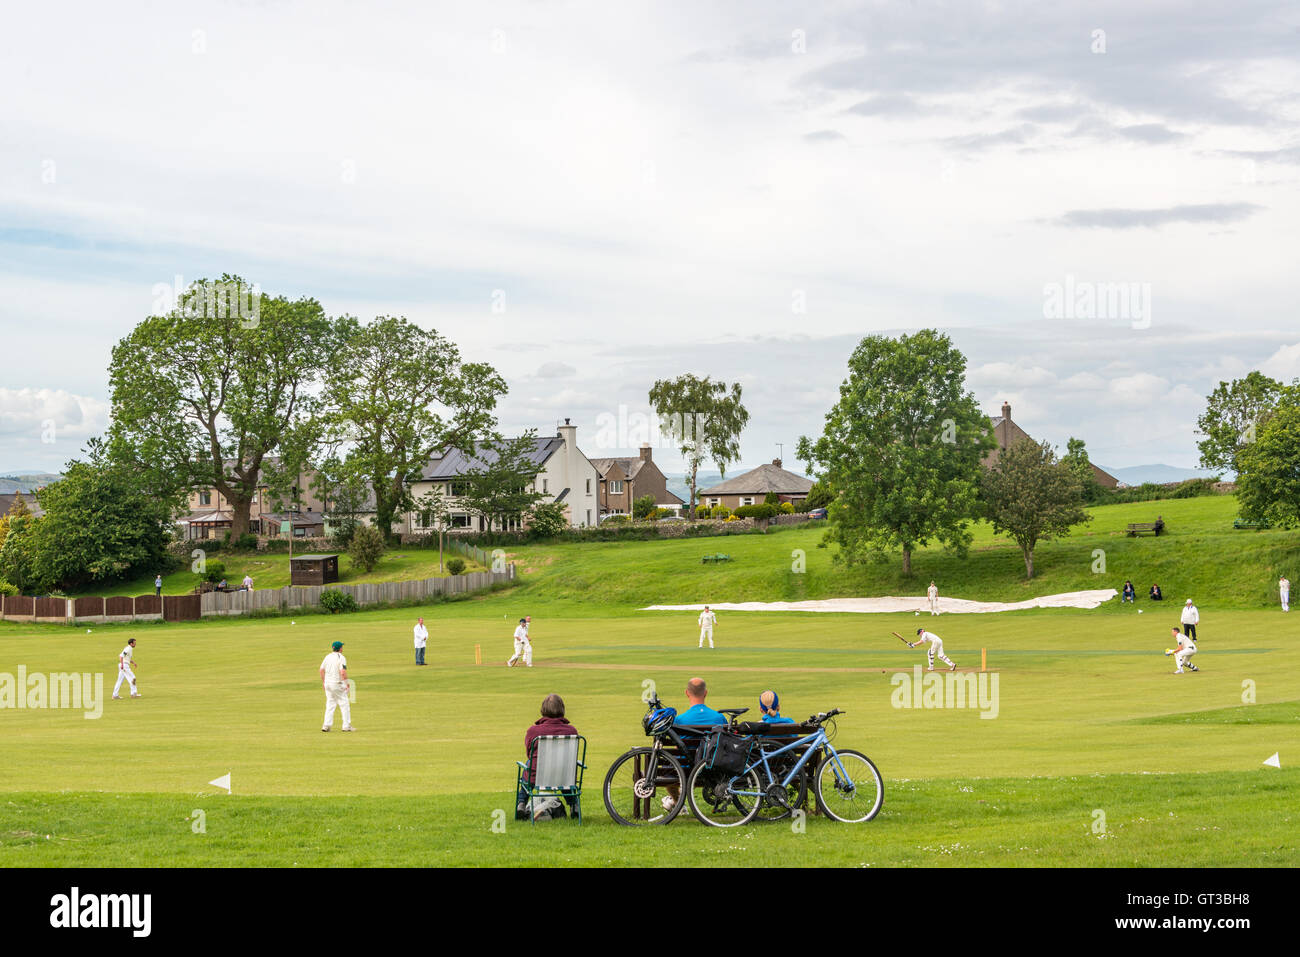 A cricket match near Arnside, Lancashire/Cumbria border - Stock Image